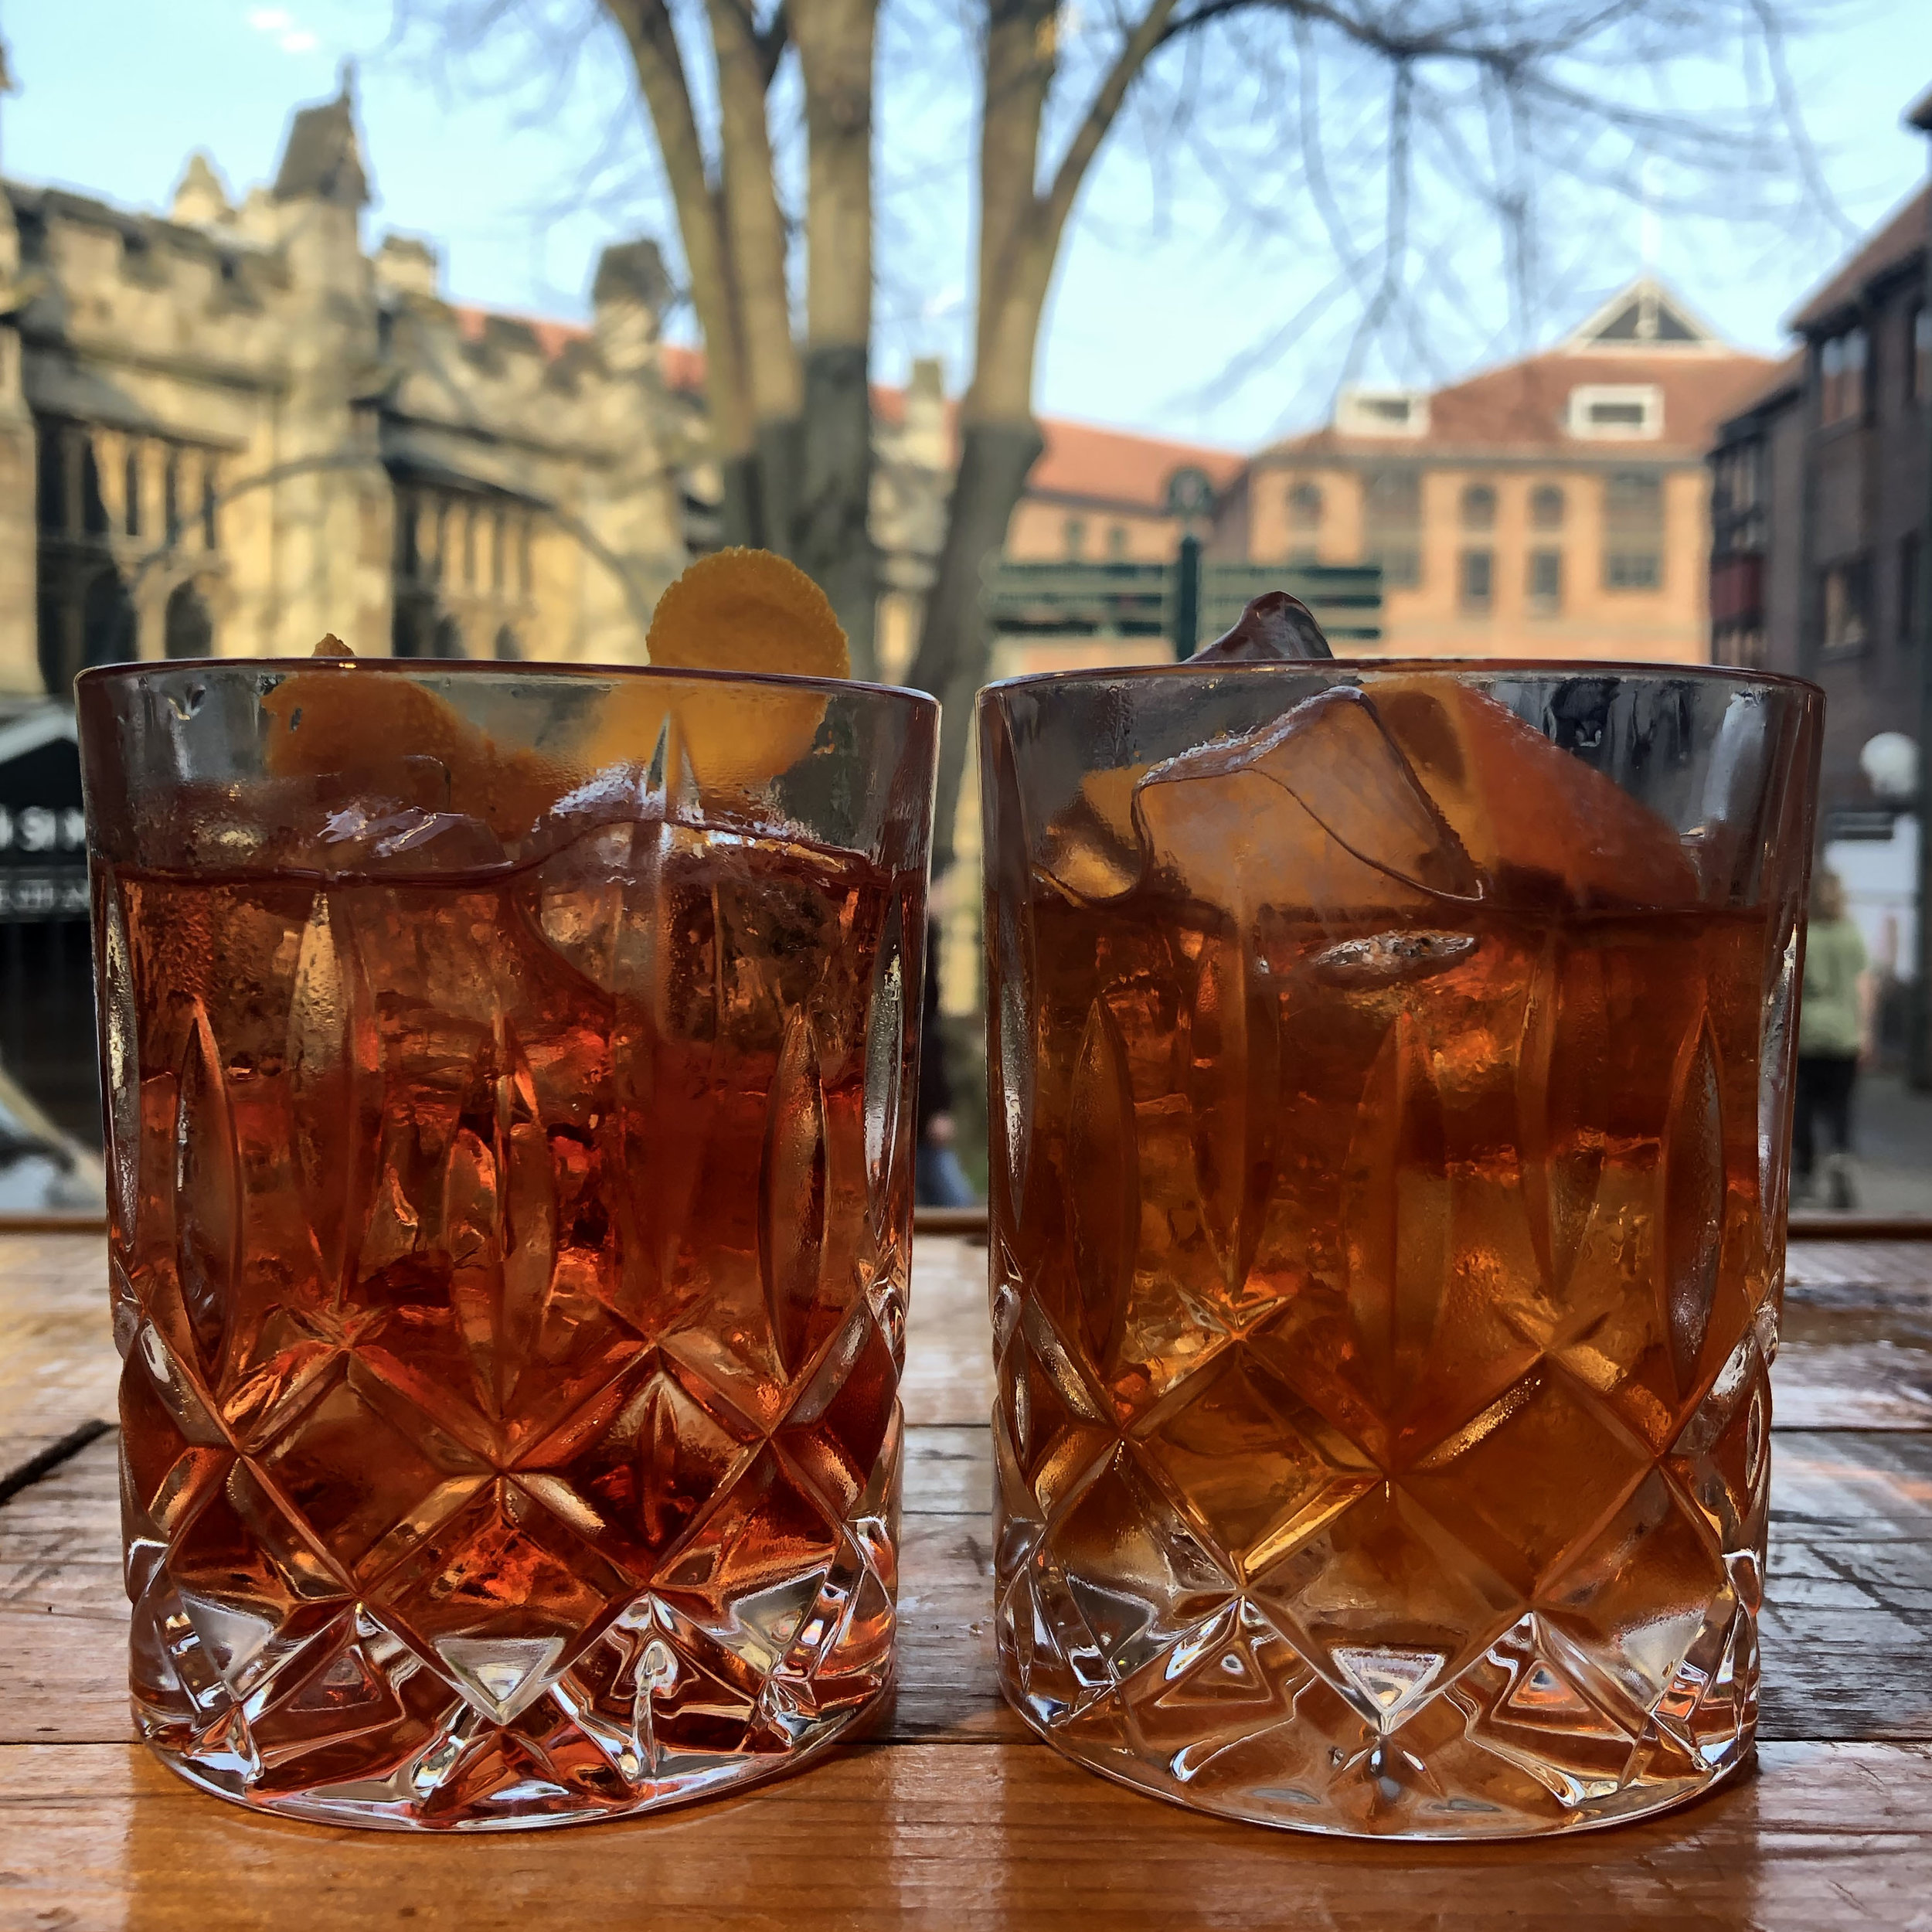 Cocktails at Pairings: Negroni (left) and an Old Fashioned (right)